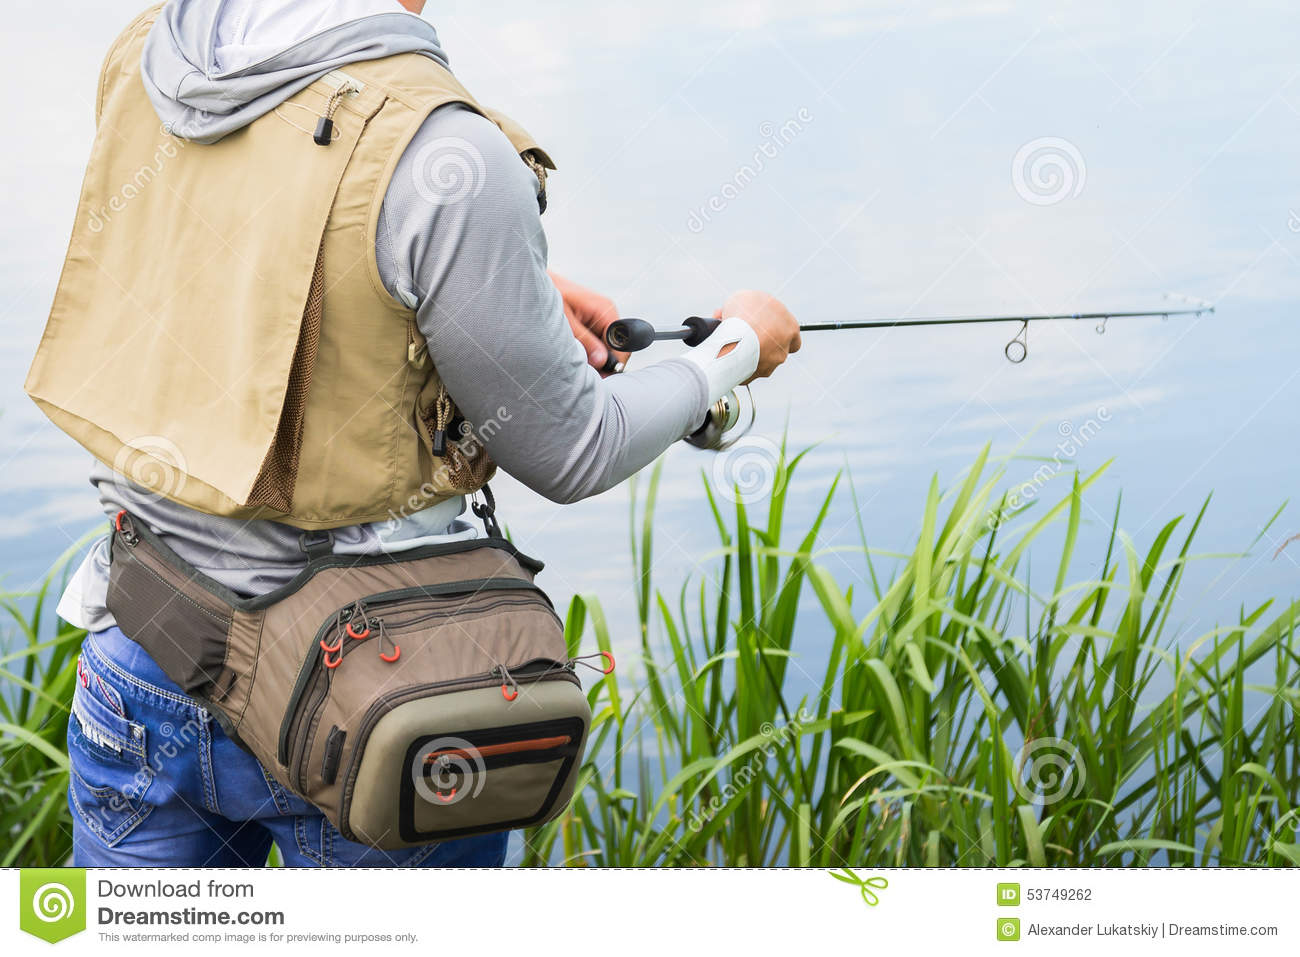 how to catch big fish from river bank